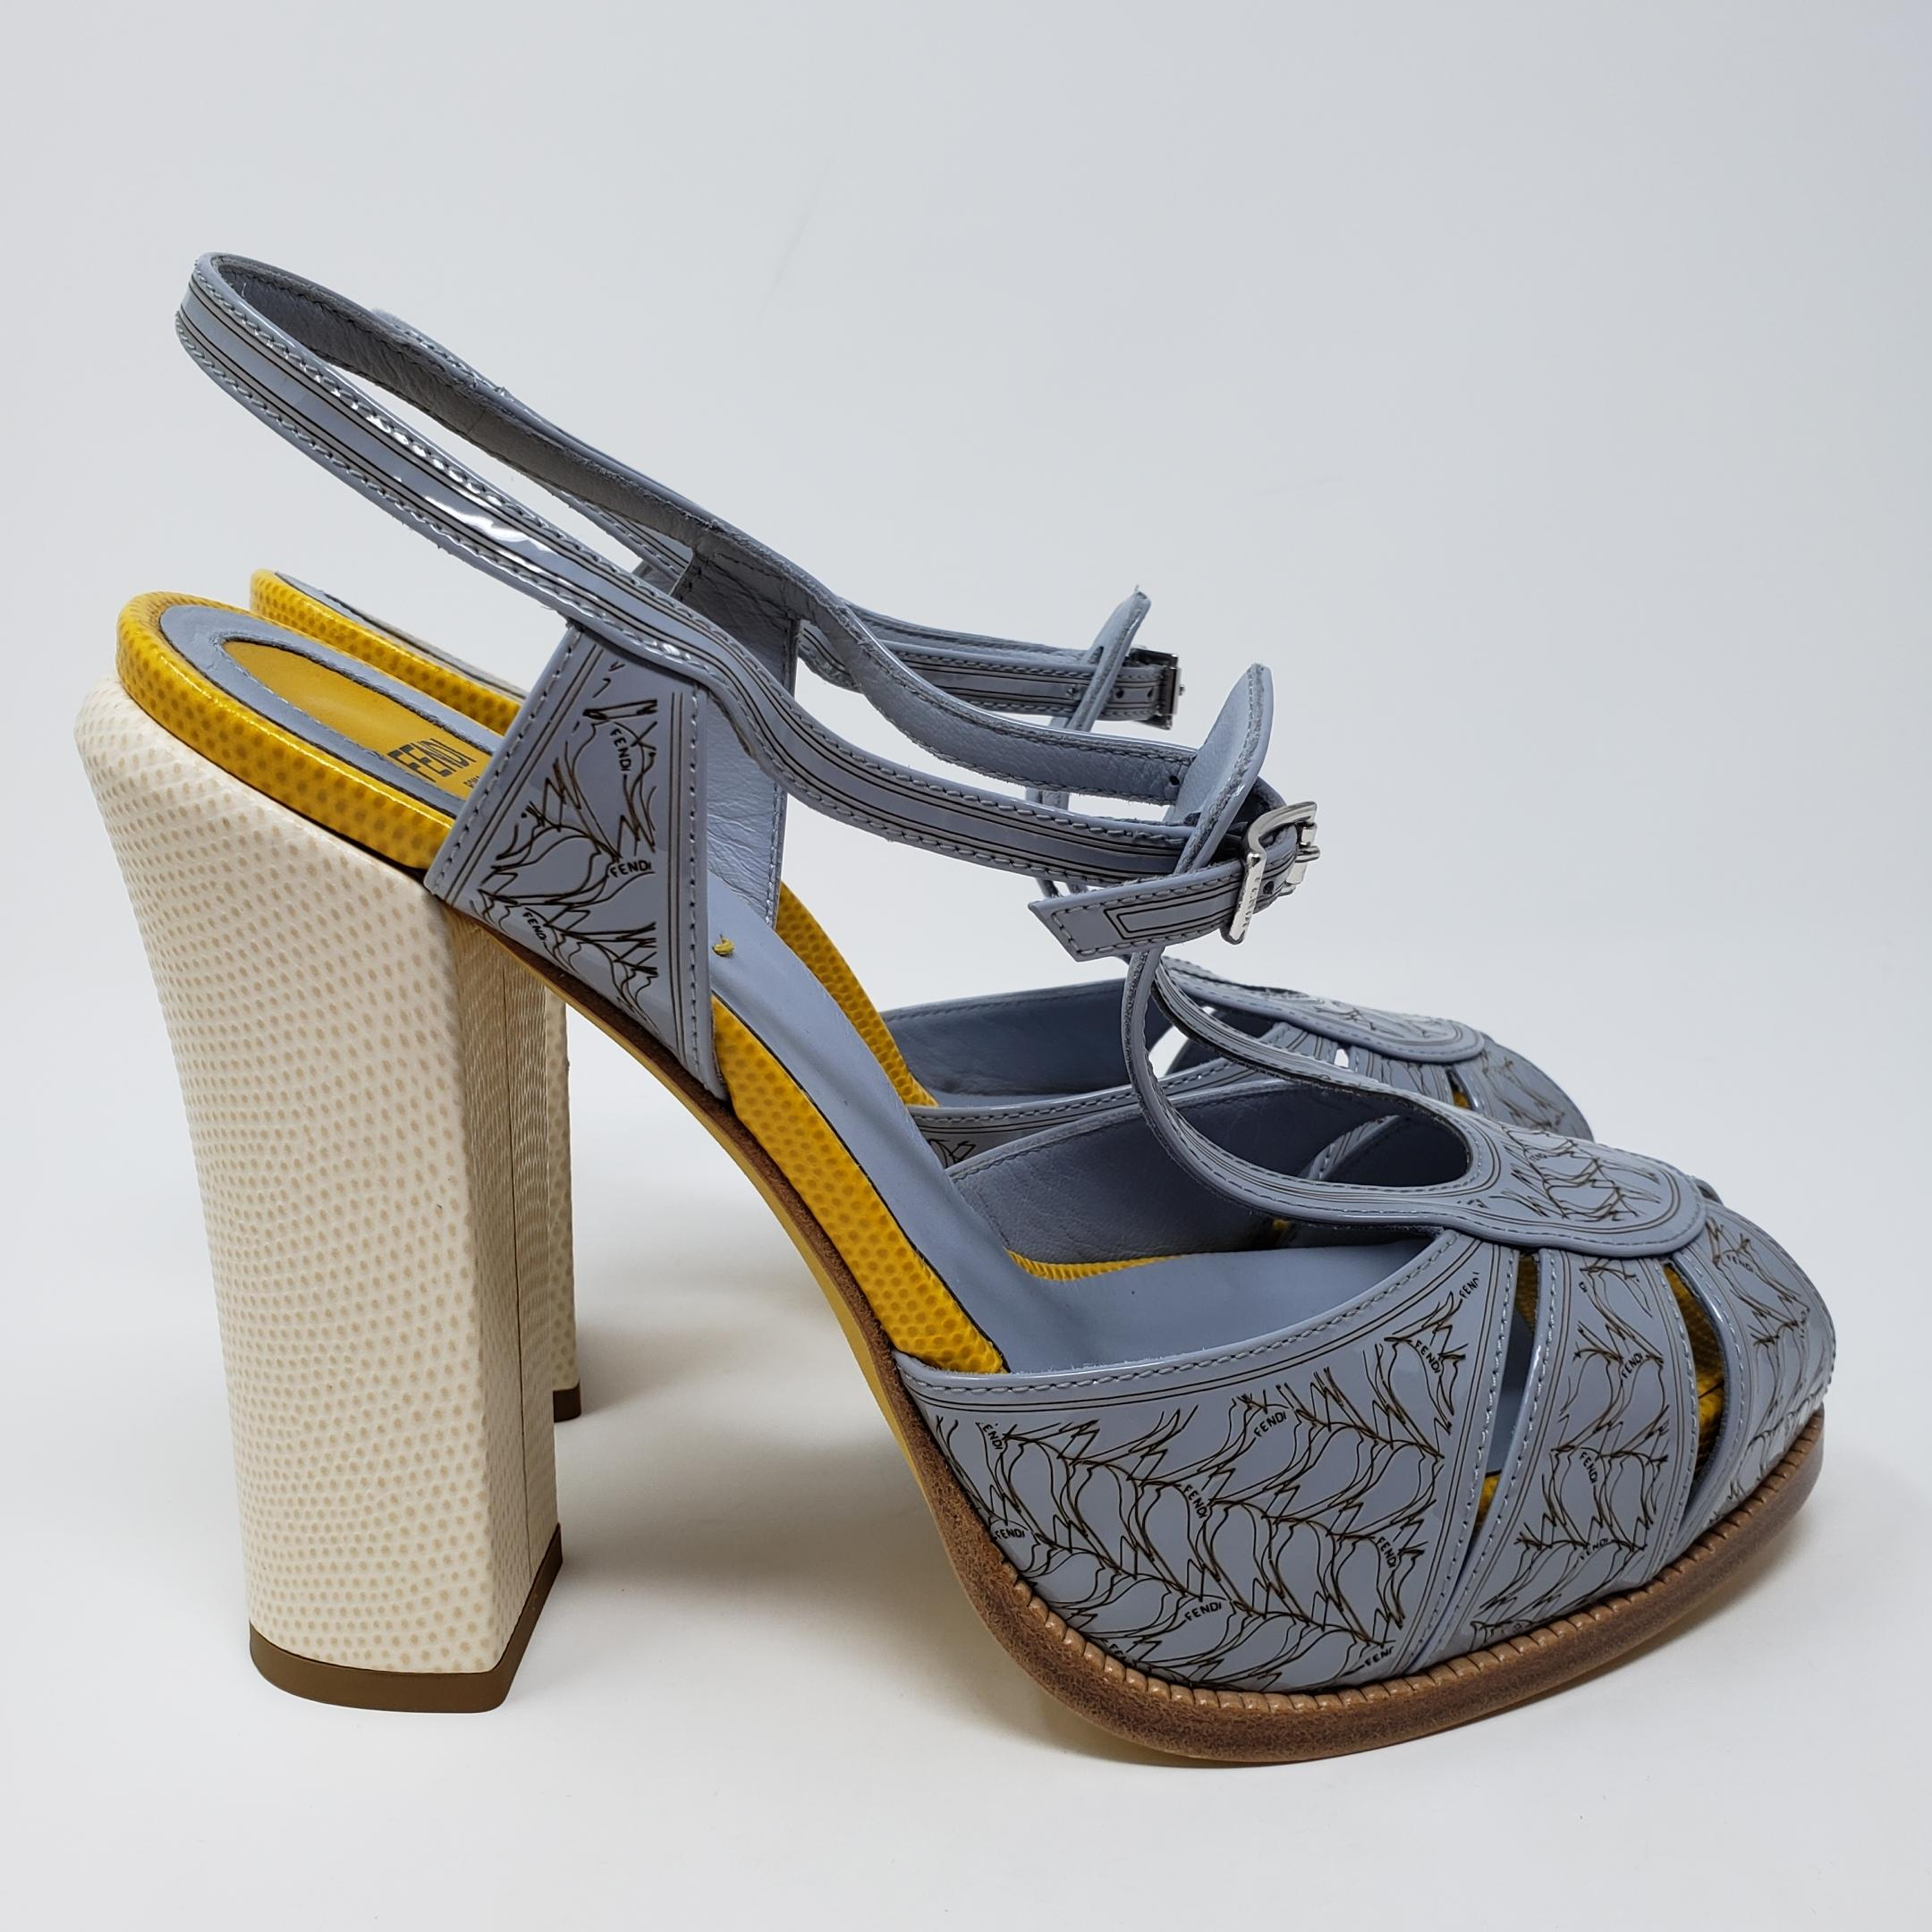 a77acffe02 ... Fendi Fendi Fendi Multicolor Blue Yellow Patent Leather Peep-toe  Platform Sandals Size EU 39 ...